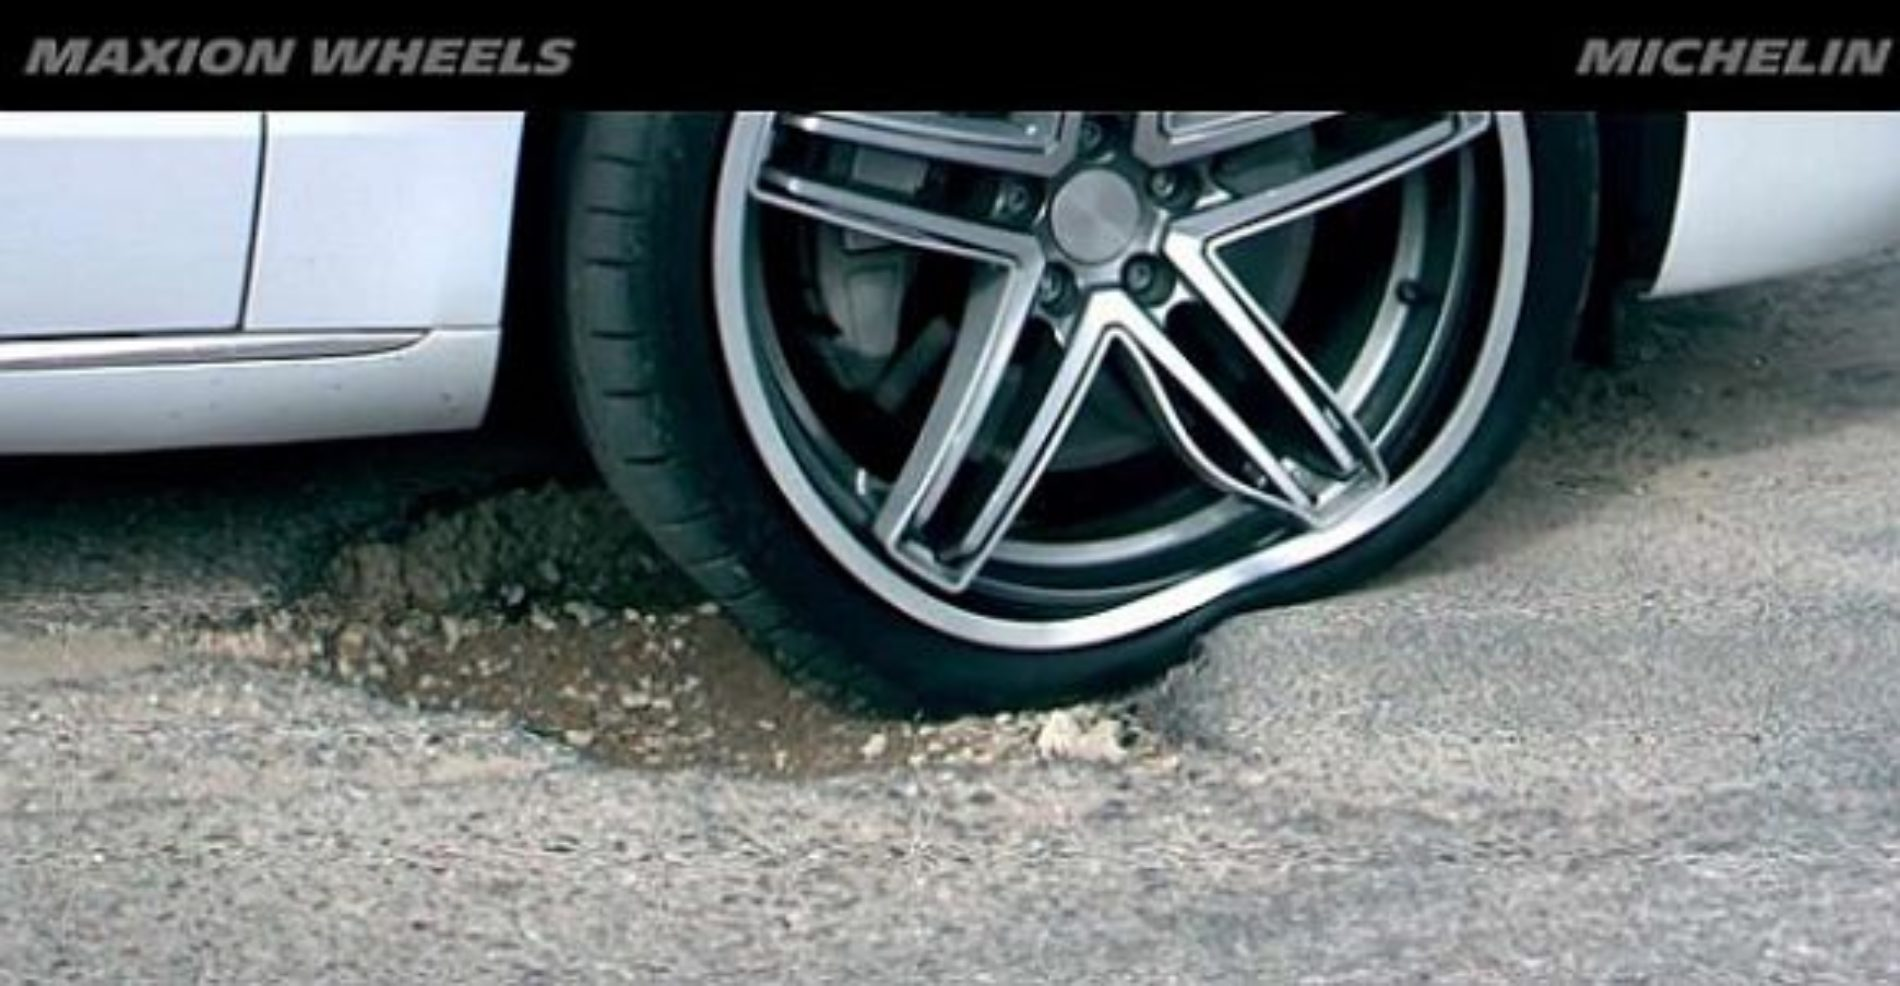 Michelin desarrolla rines flexibles anti baches